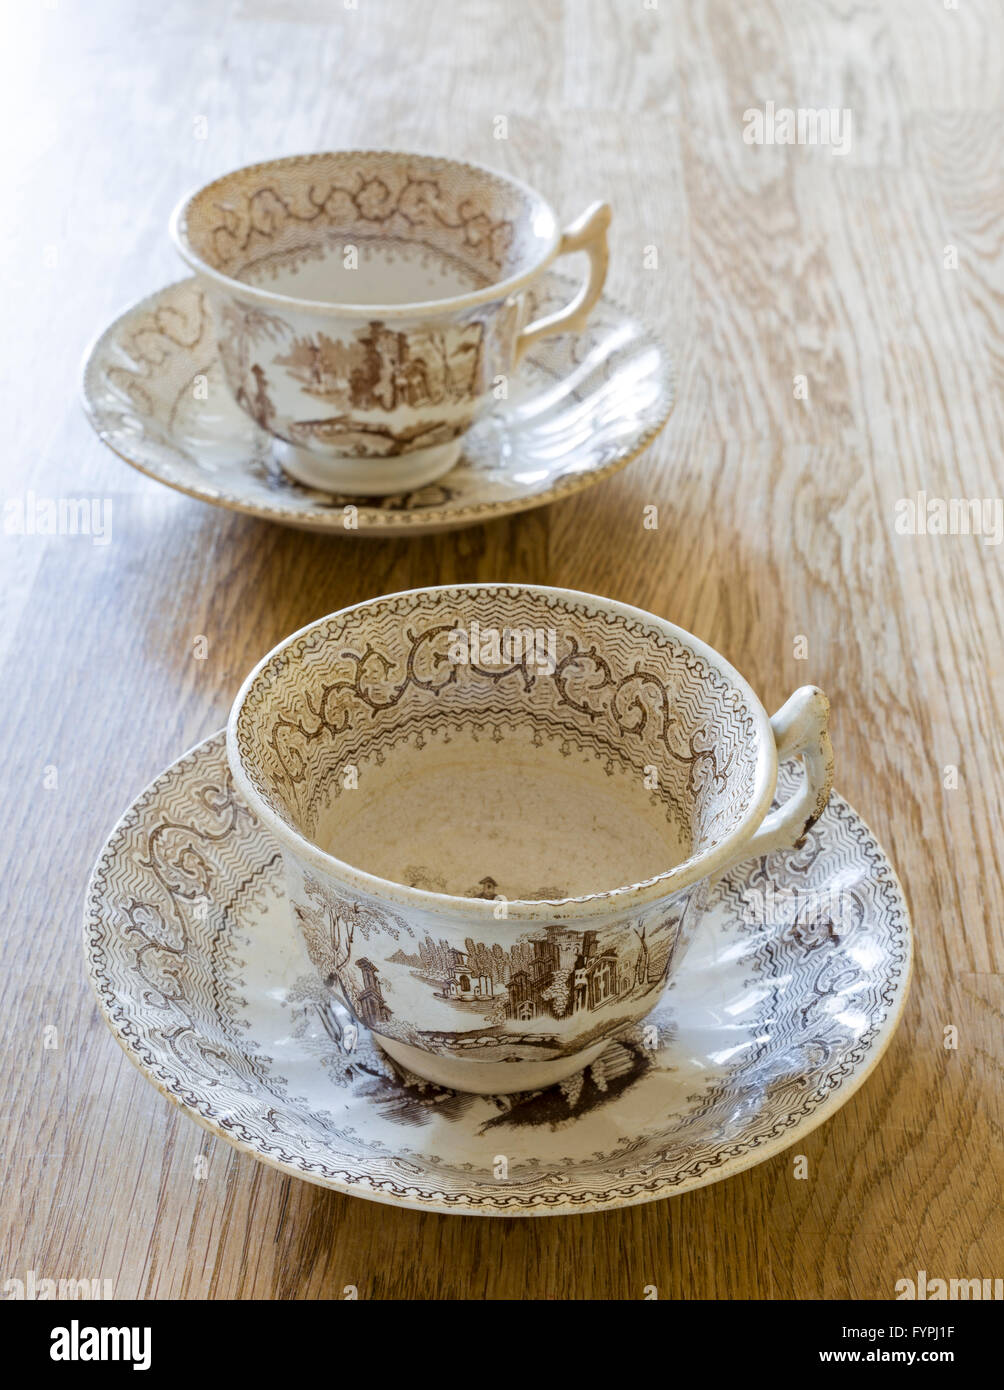 Two old antique porcelain coffee or tea cup and saucer on wooden table - Stock Image